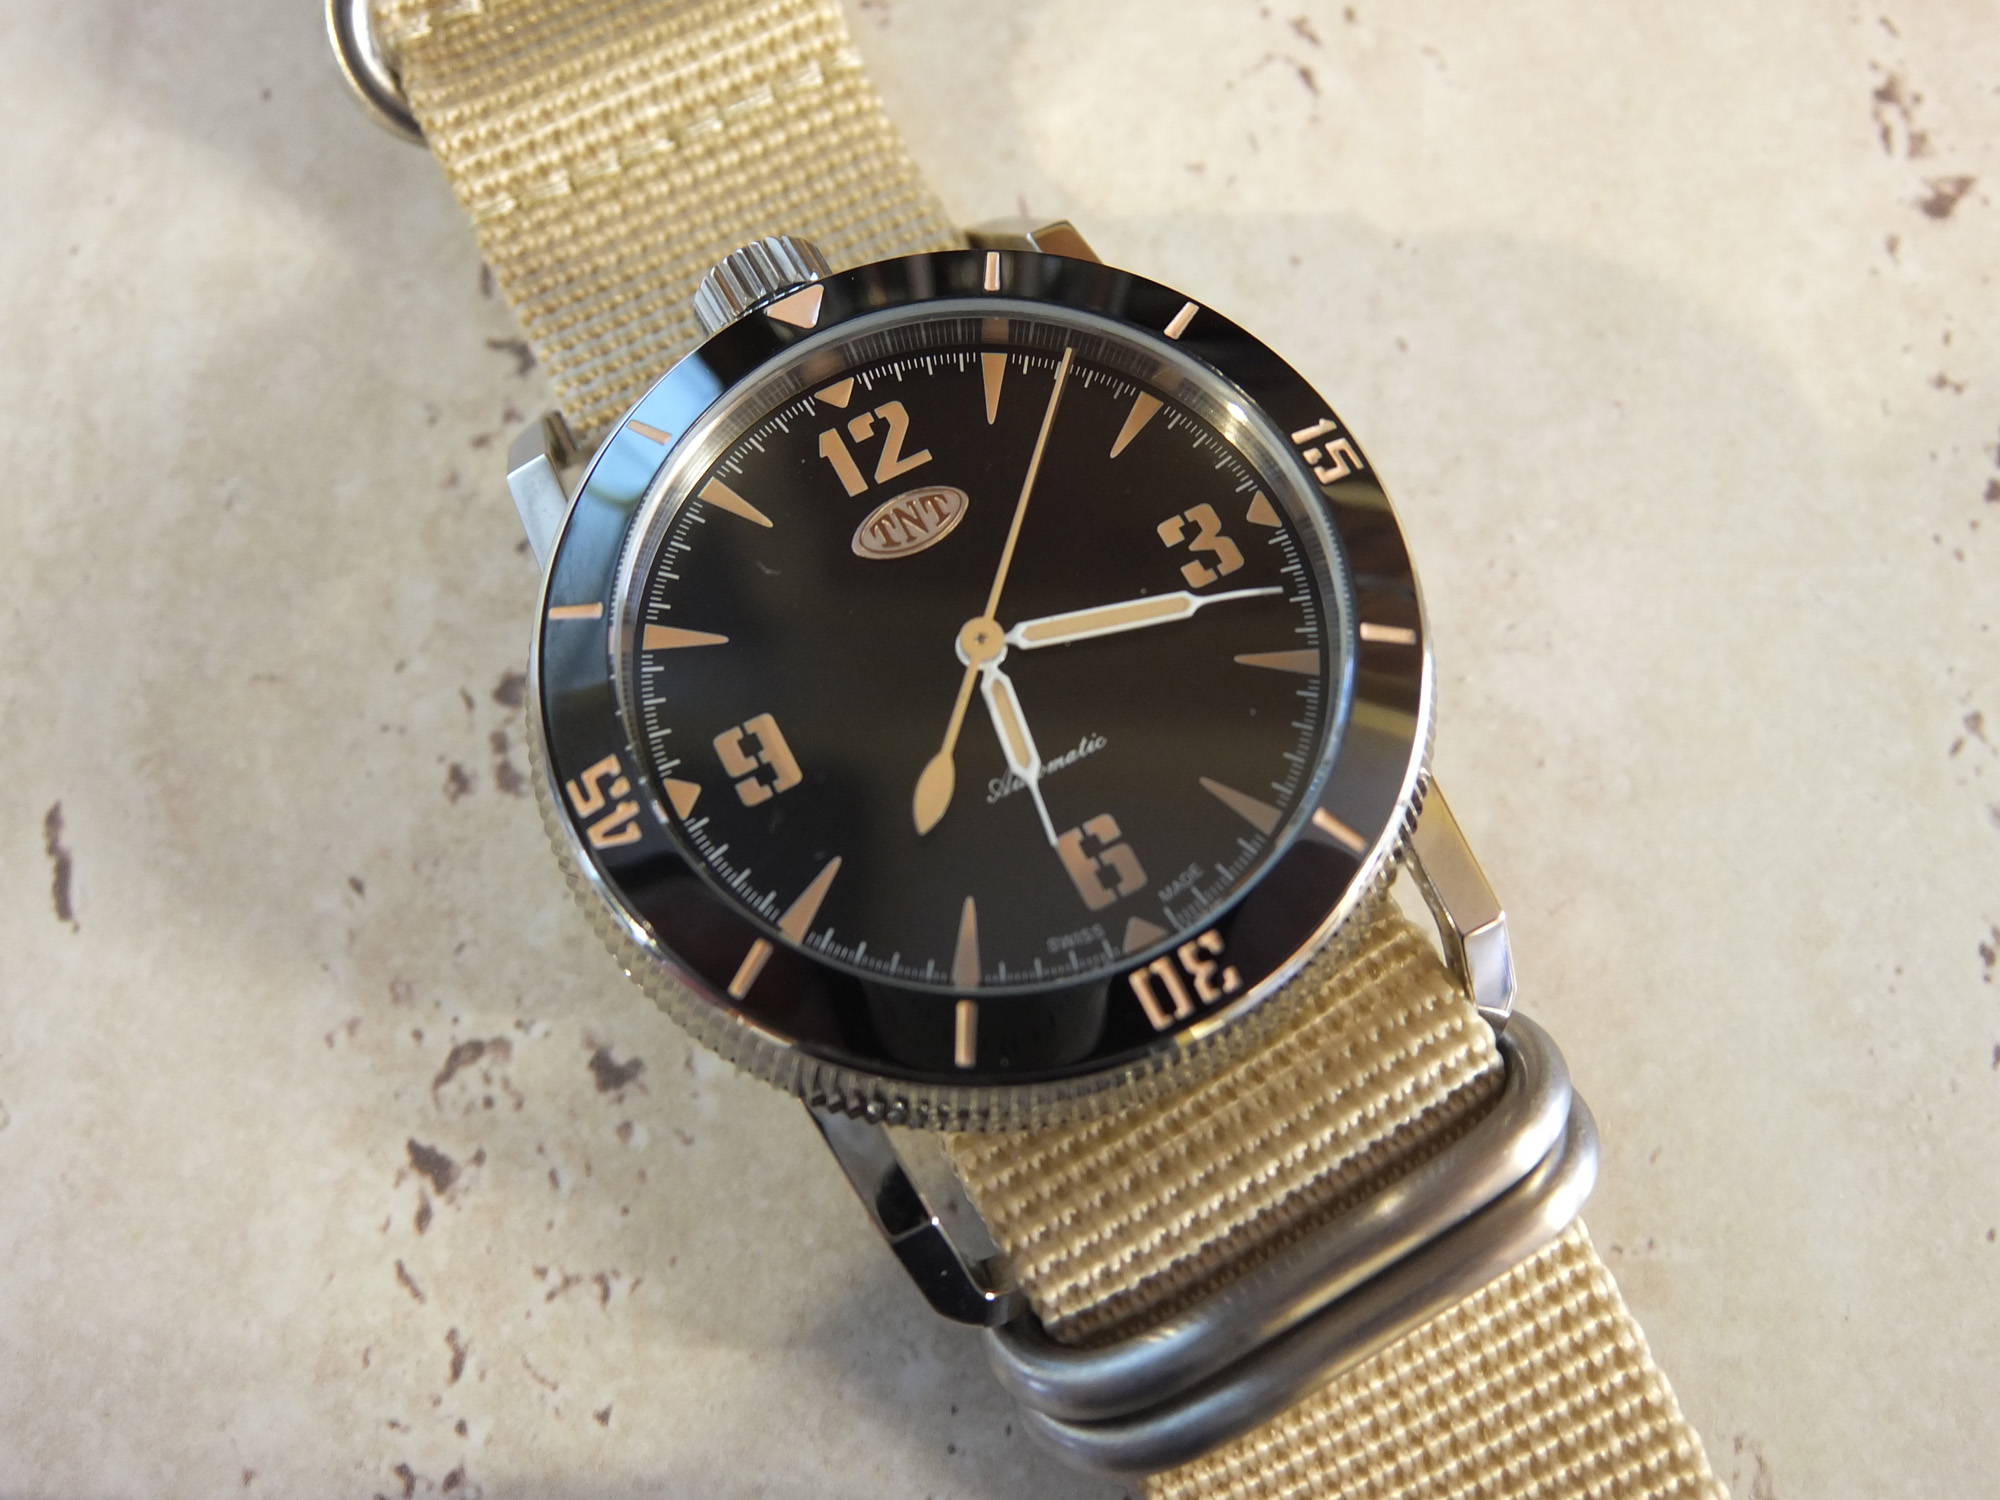 The TNT Challenger 1 watch with NATO Strap